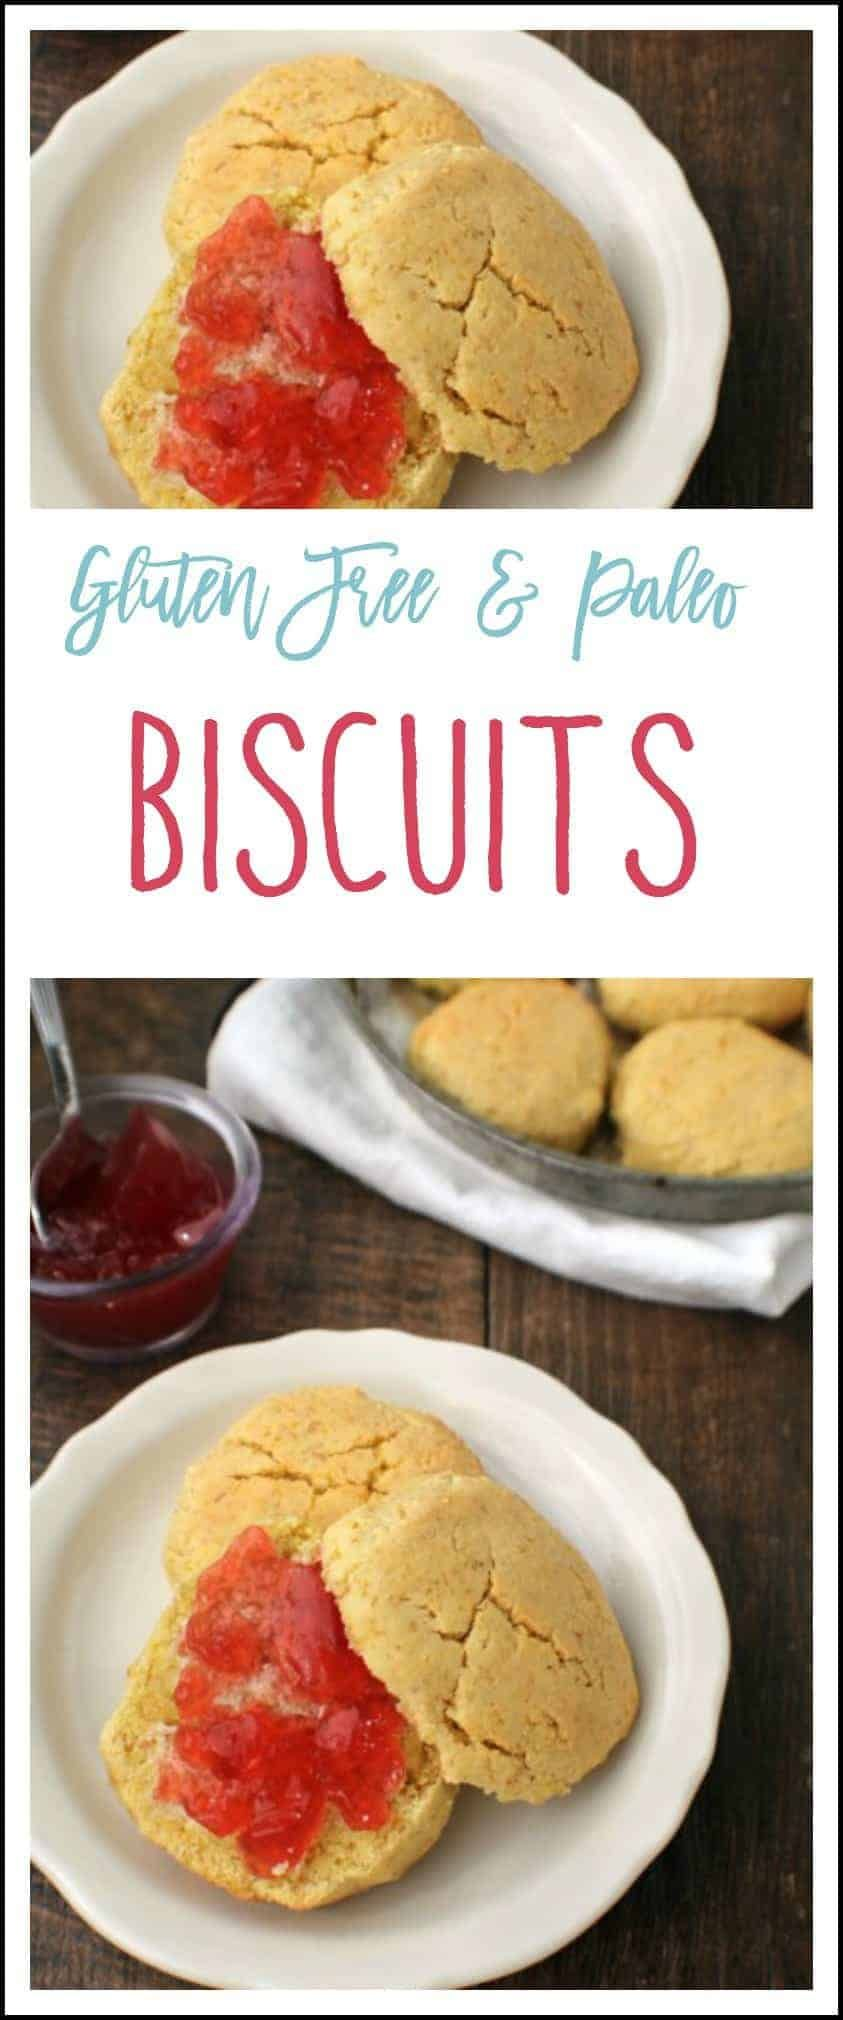 These gluten free and Paleo Biscuits are soft, flakey, and